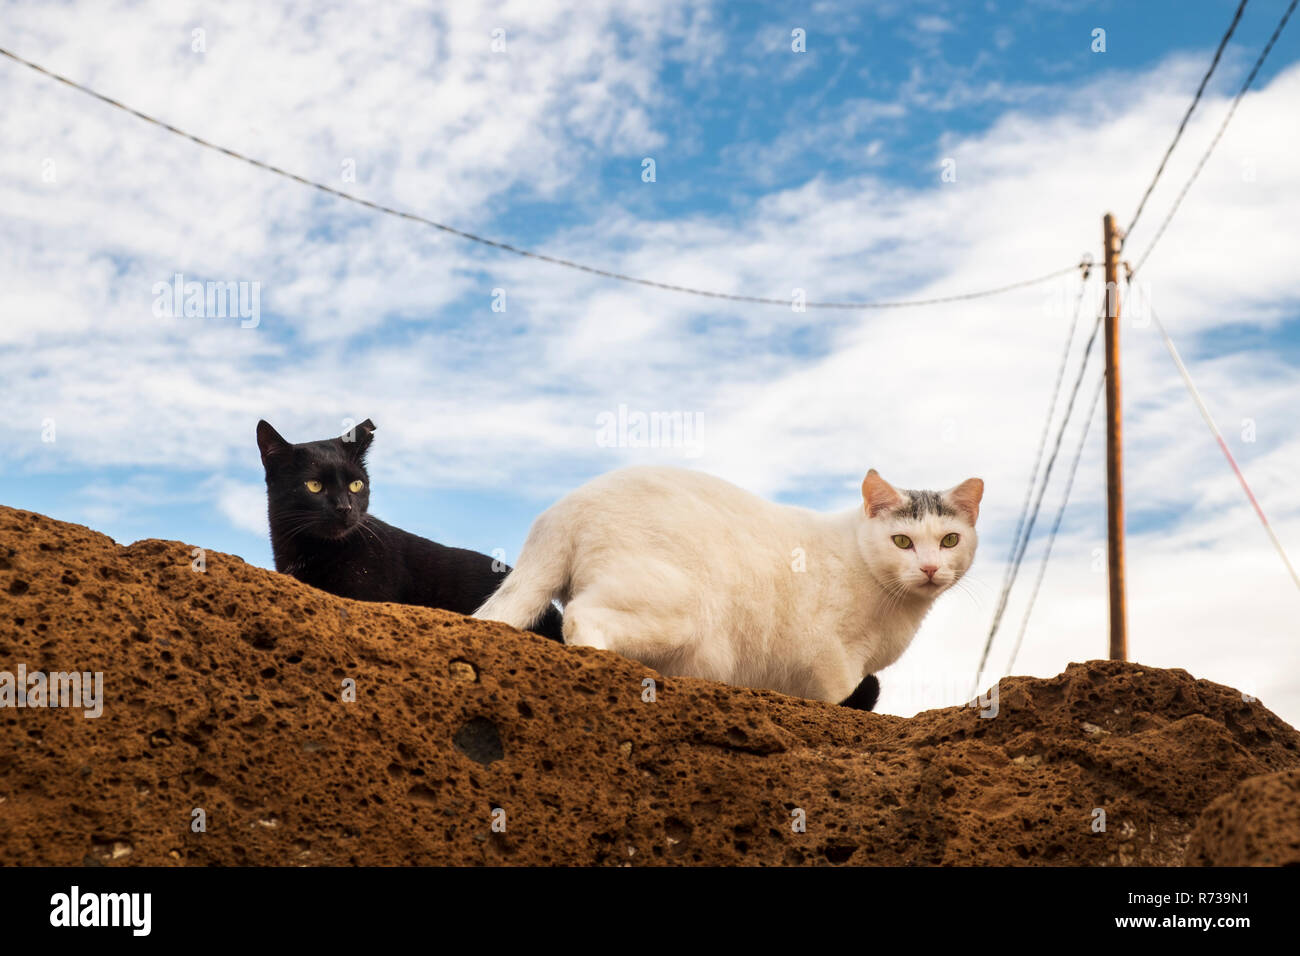 Two cats, one black, one white, looking suspiciously down from a sandy coloured rock in El Puertito, Costa Adeje, Tenerife, Canary Islands, Spain - Stock Image